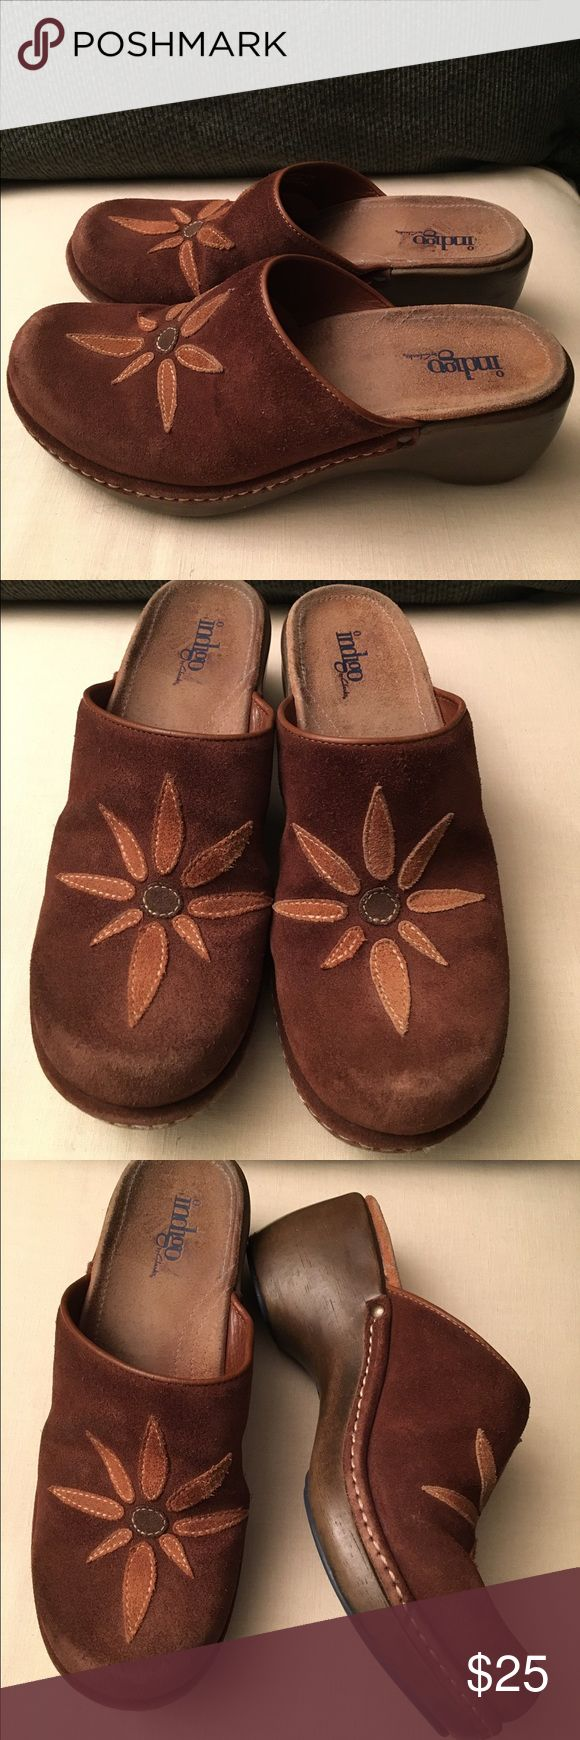 Clarks Indigo Brown Suede Mule Clogs Gently worn Indigo by Clarks brown suede clogs. Clarks Shoes Mules & Clogs